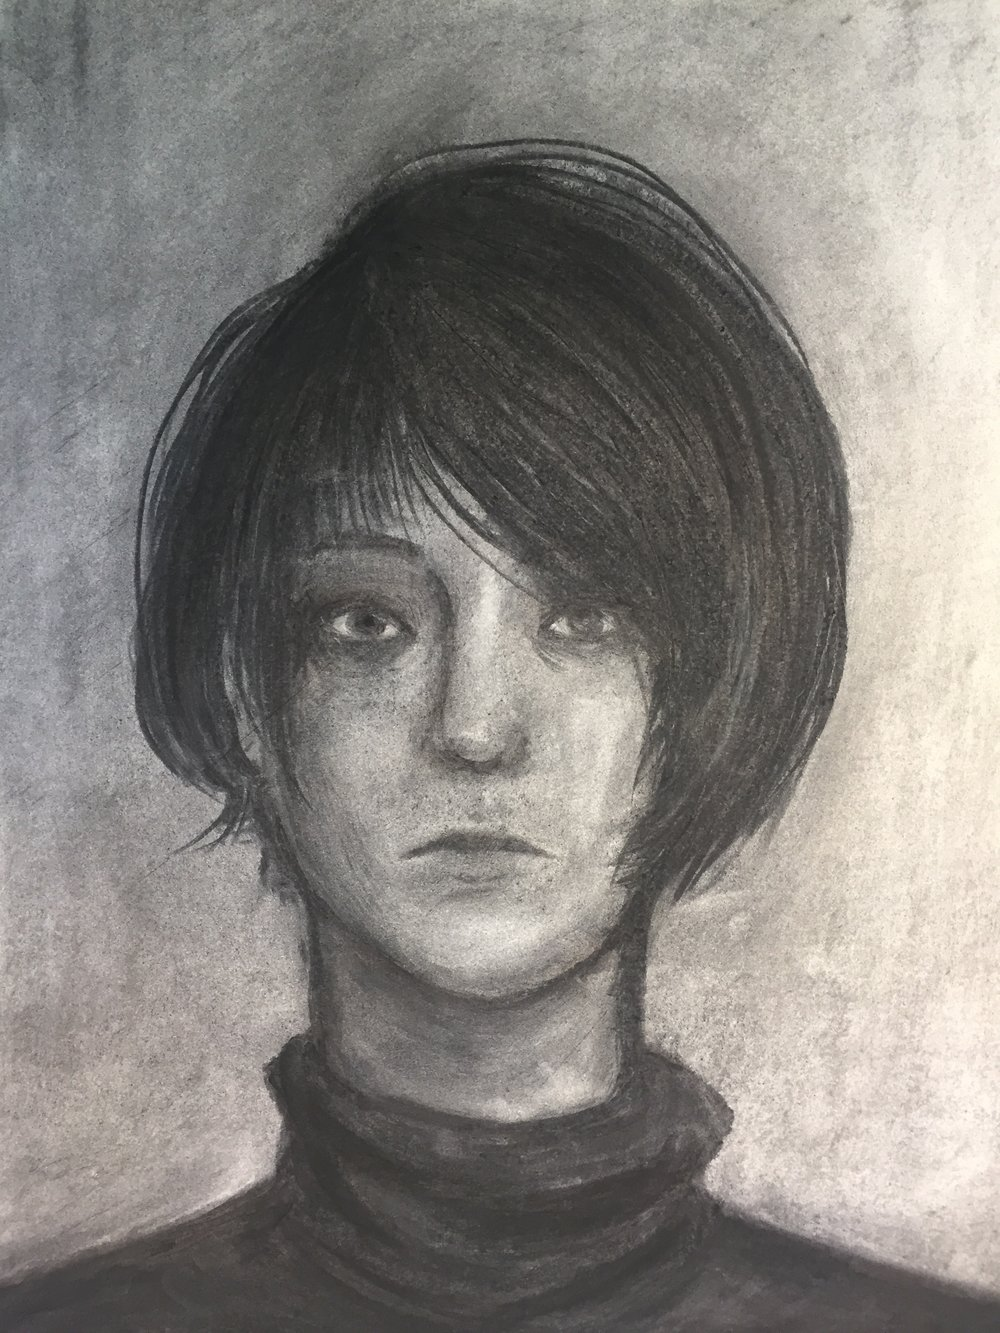 Self-Portrait (charcoal) - Lana Tilke